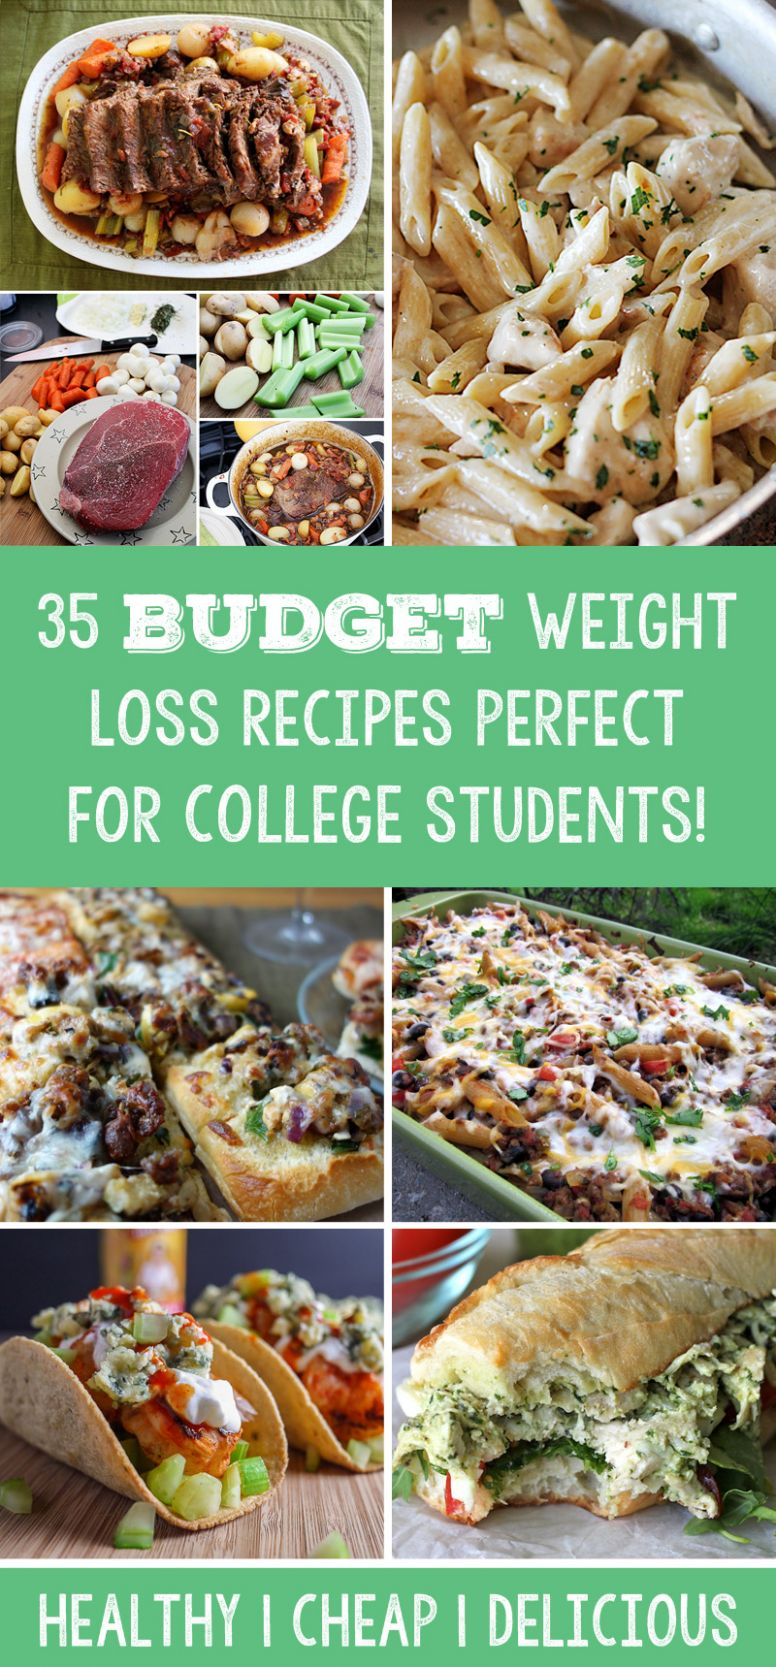 10 Budget Weight Loss Recipes Perfect For College Students ..